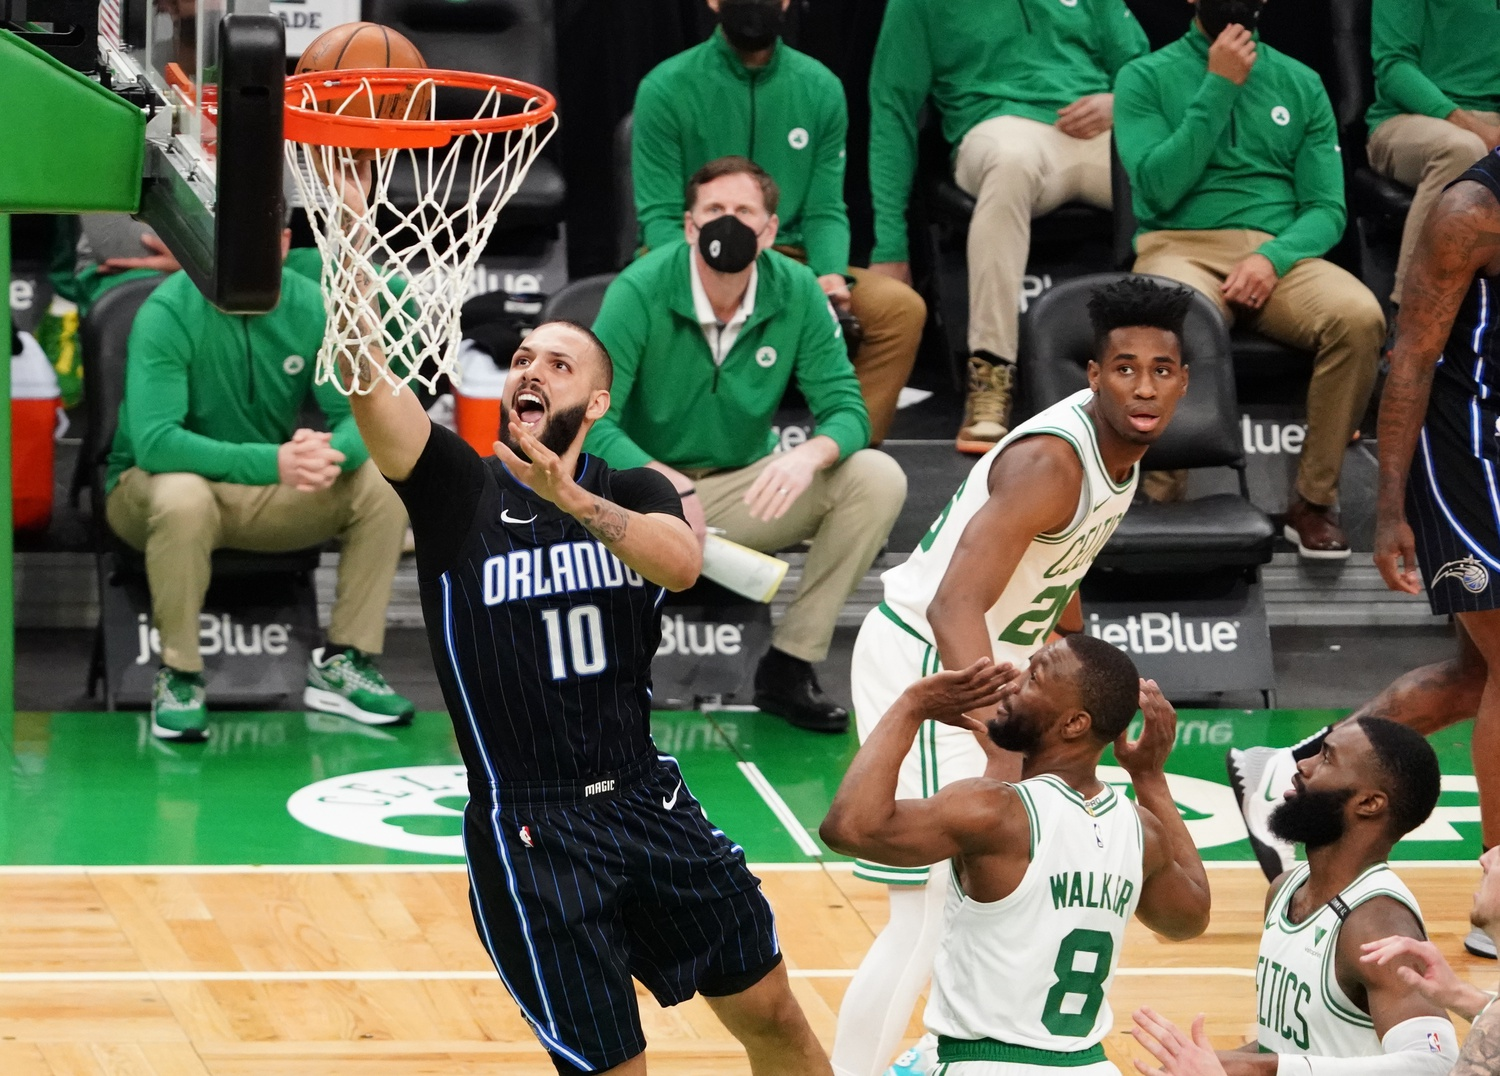 Report: Celtics acquire Fournier from Magic